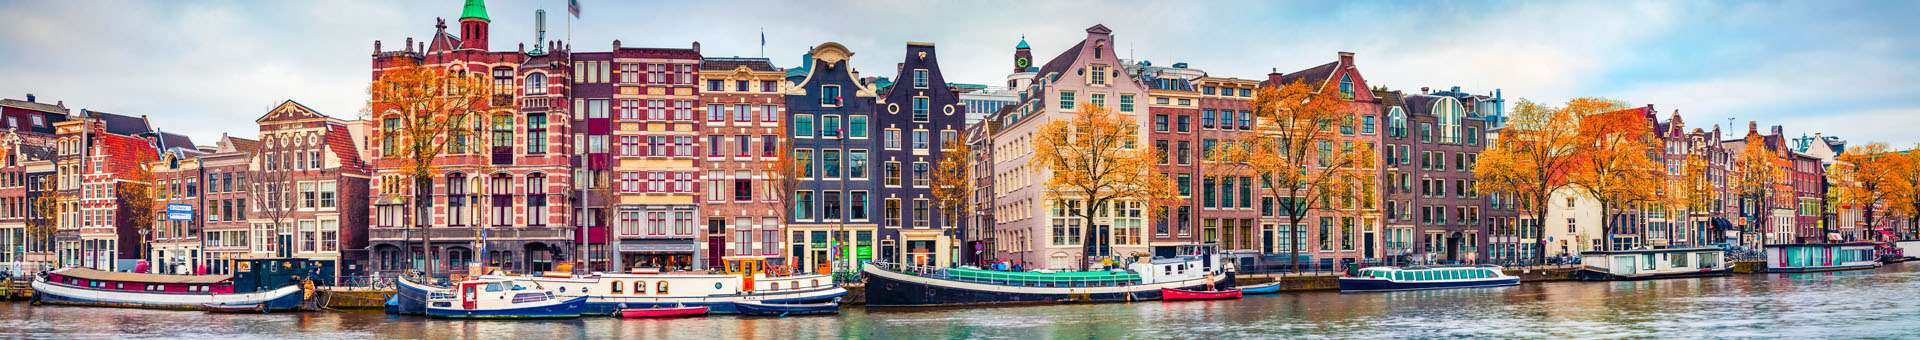 Search Whois information of domain names in Netherlands